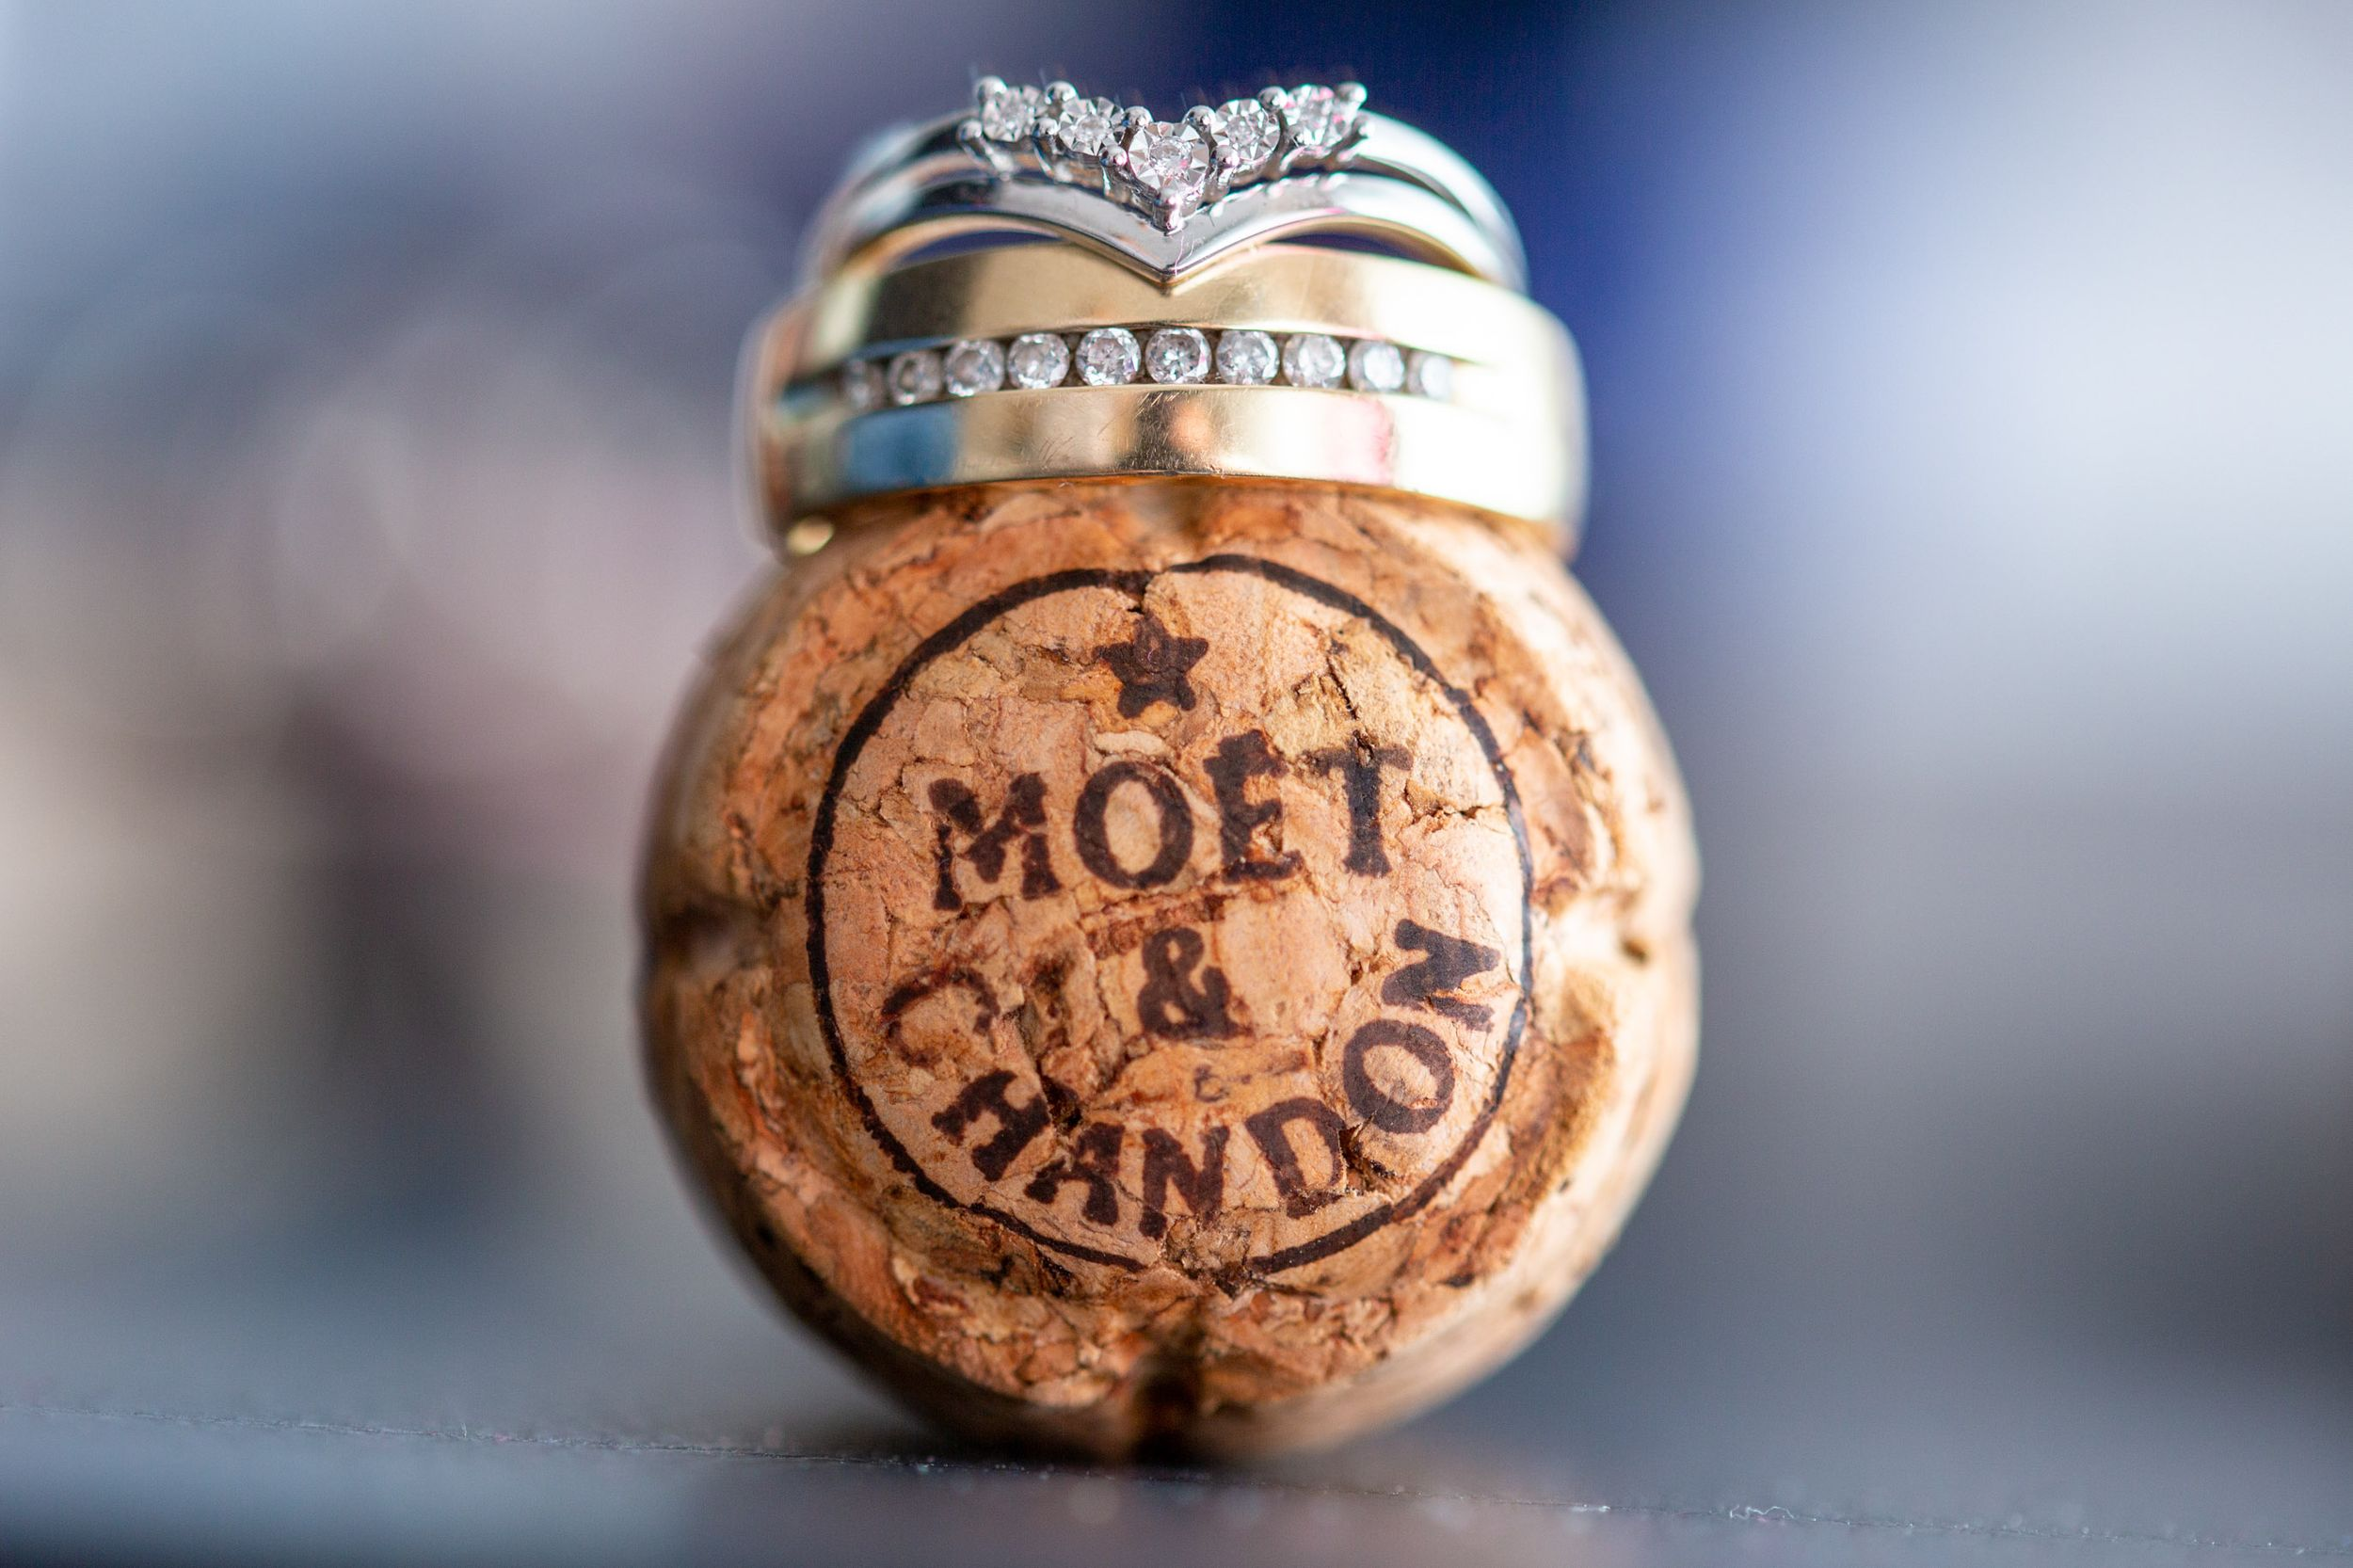 Wedding rings on Moët & Chandon champagne cork